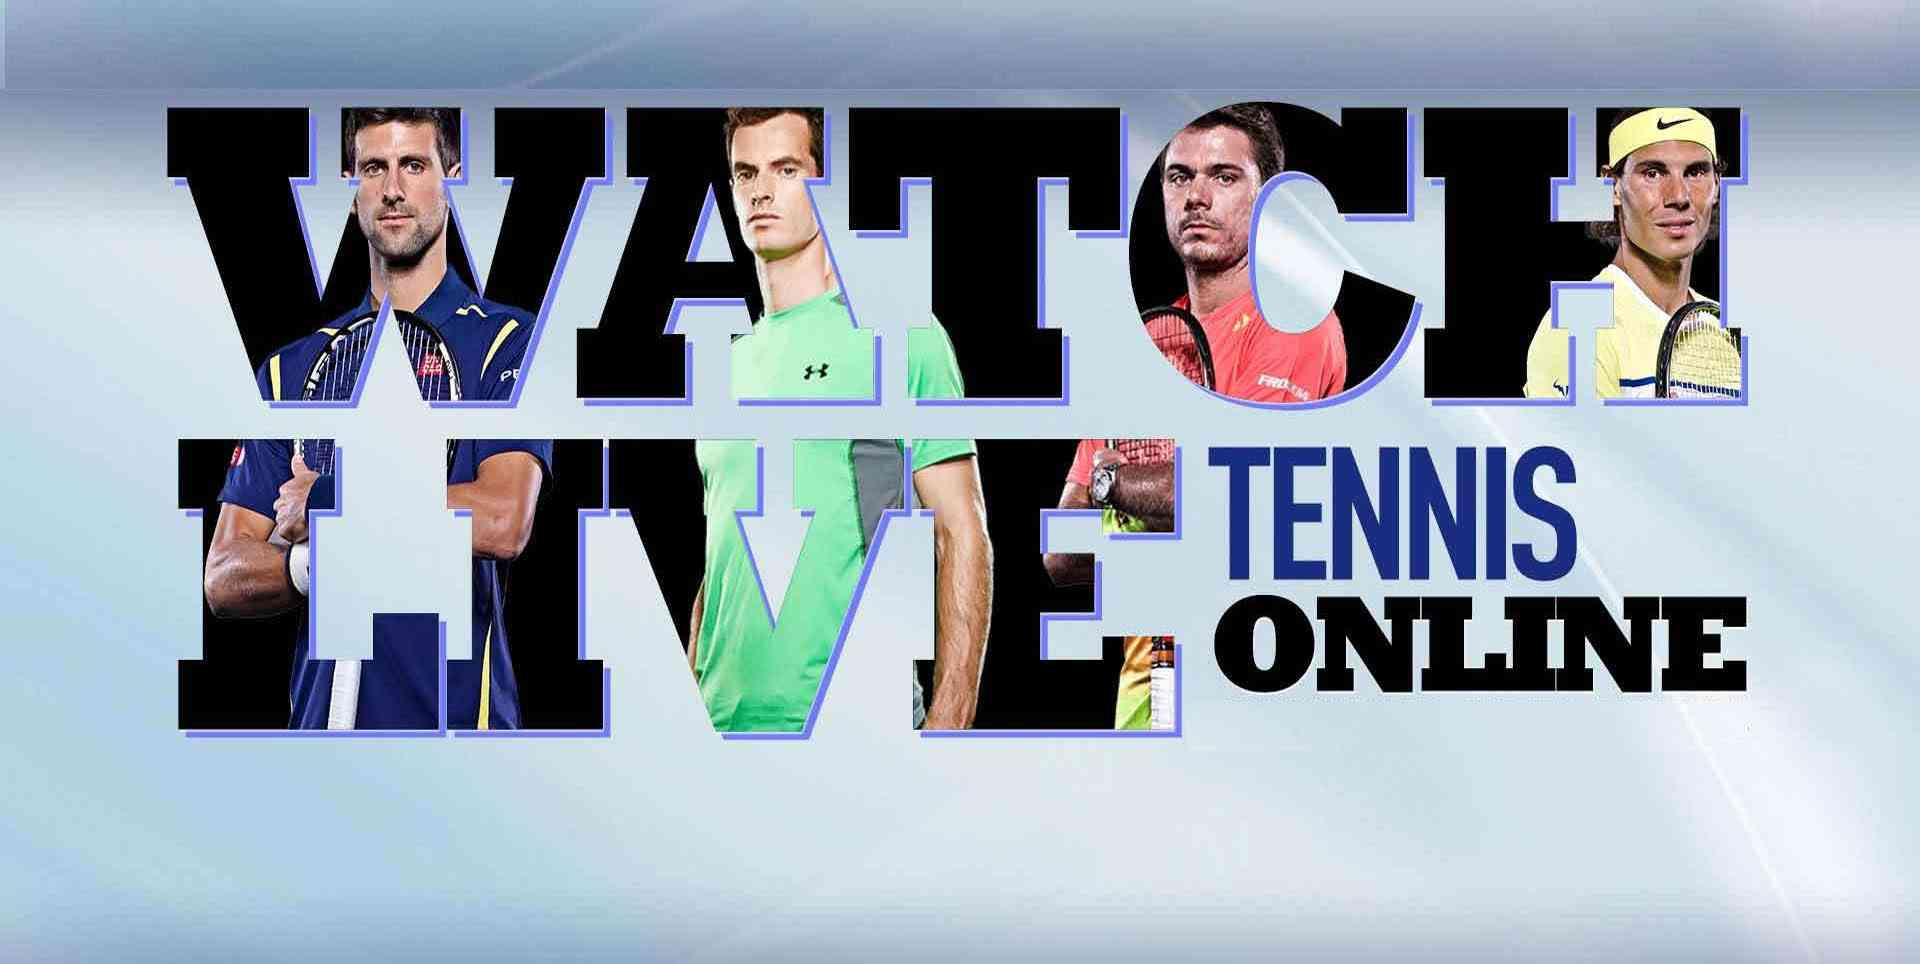 live-m.-raonic-vs-r.-federer-semi-final-2014-wimbledon-streaming